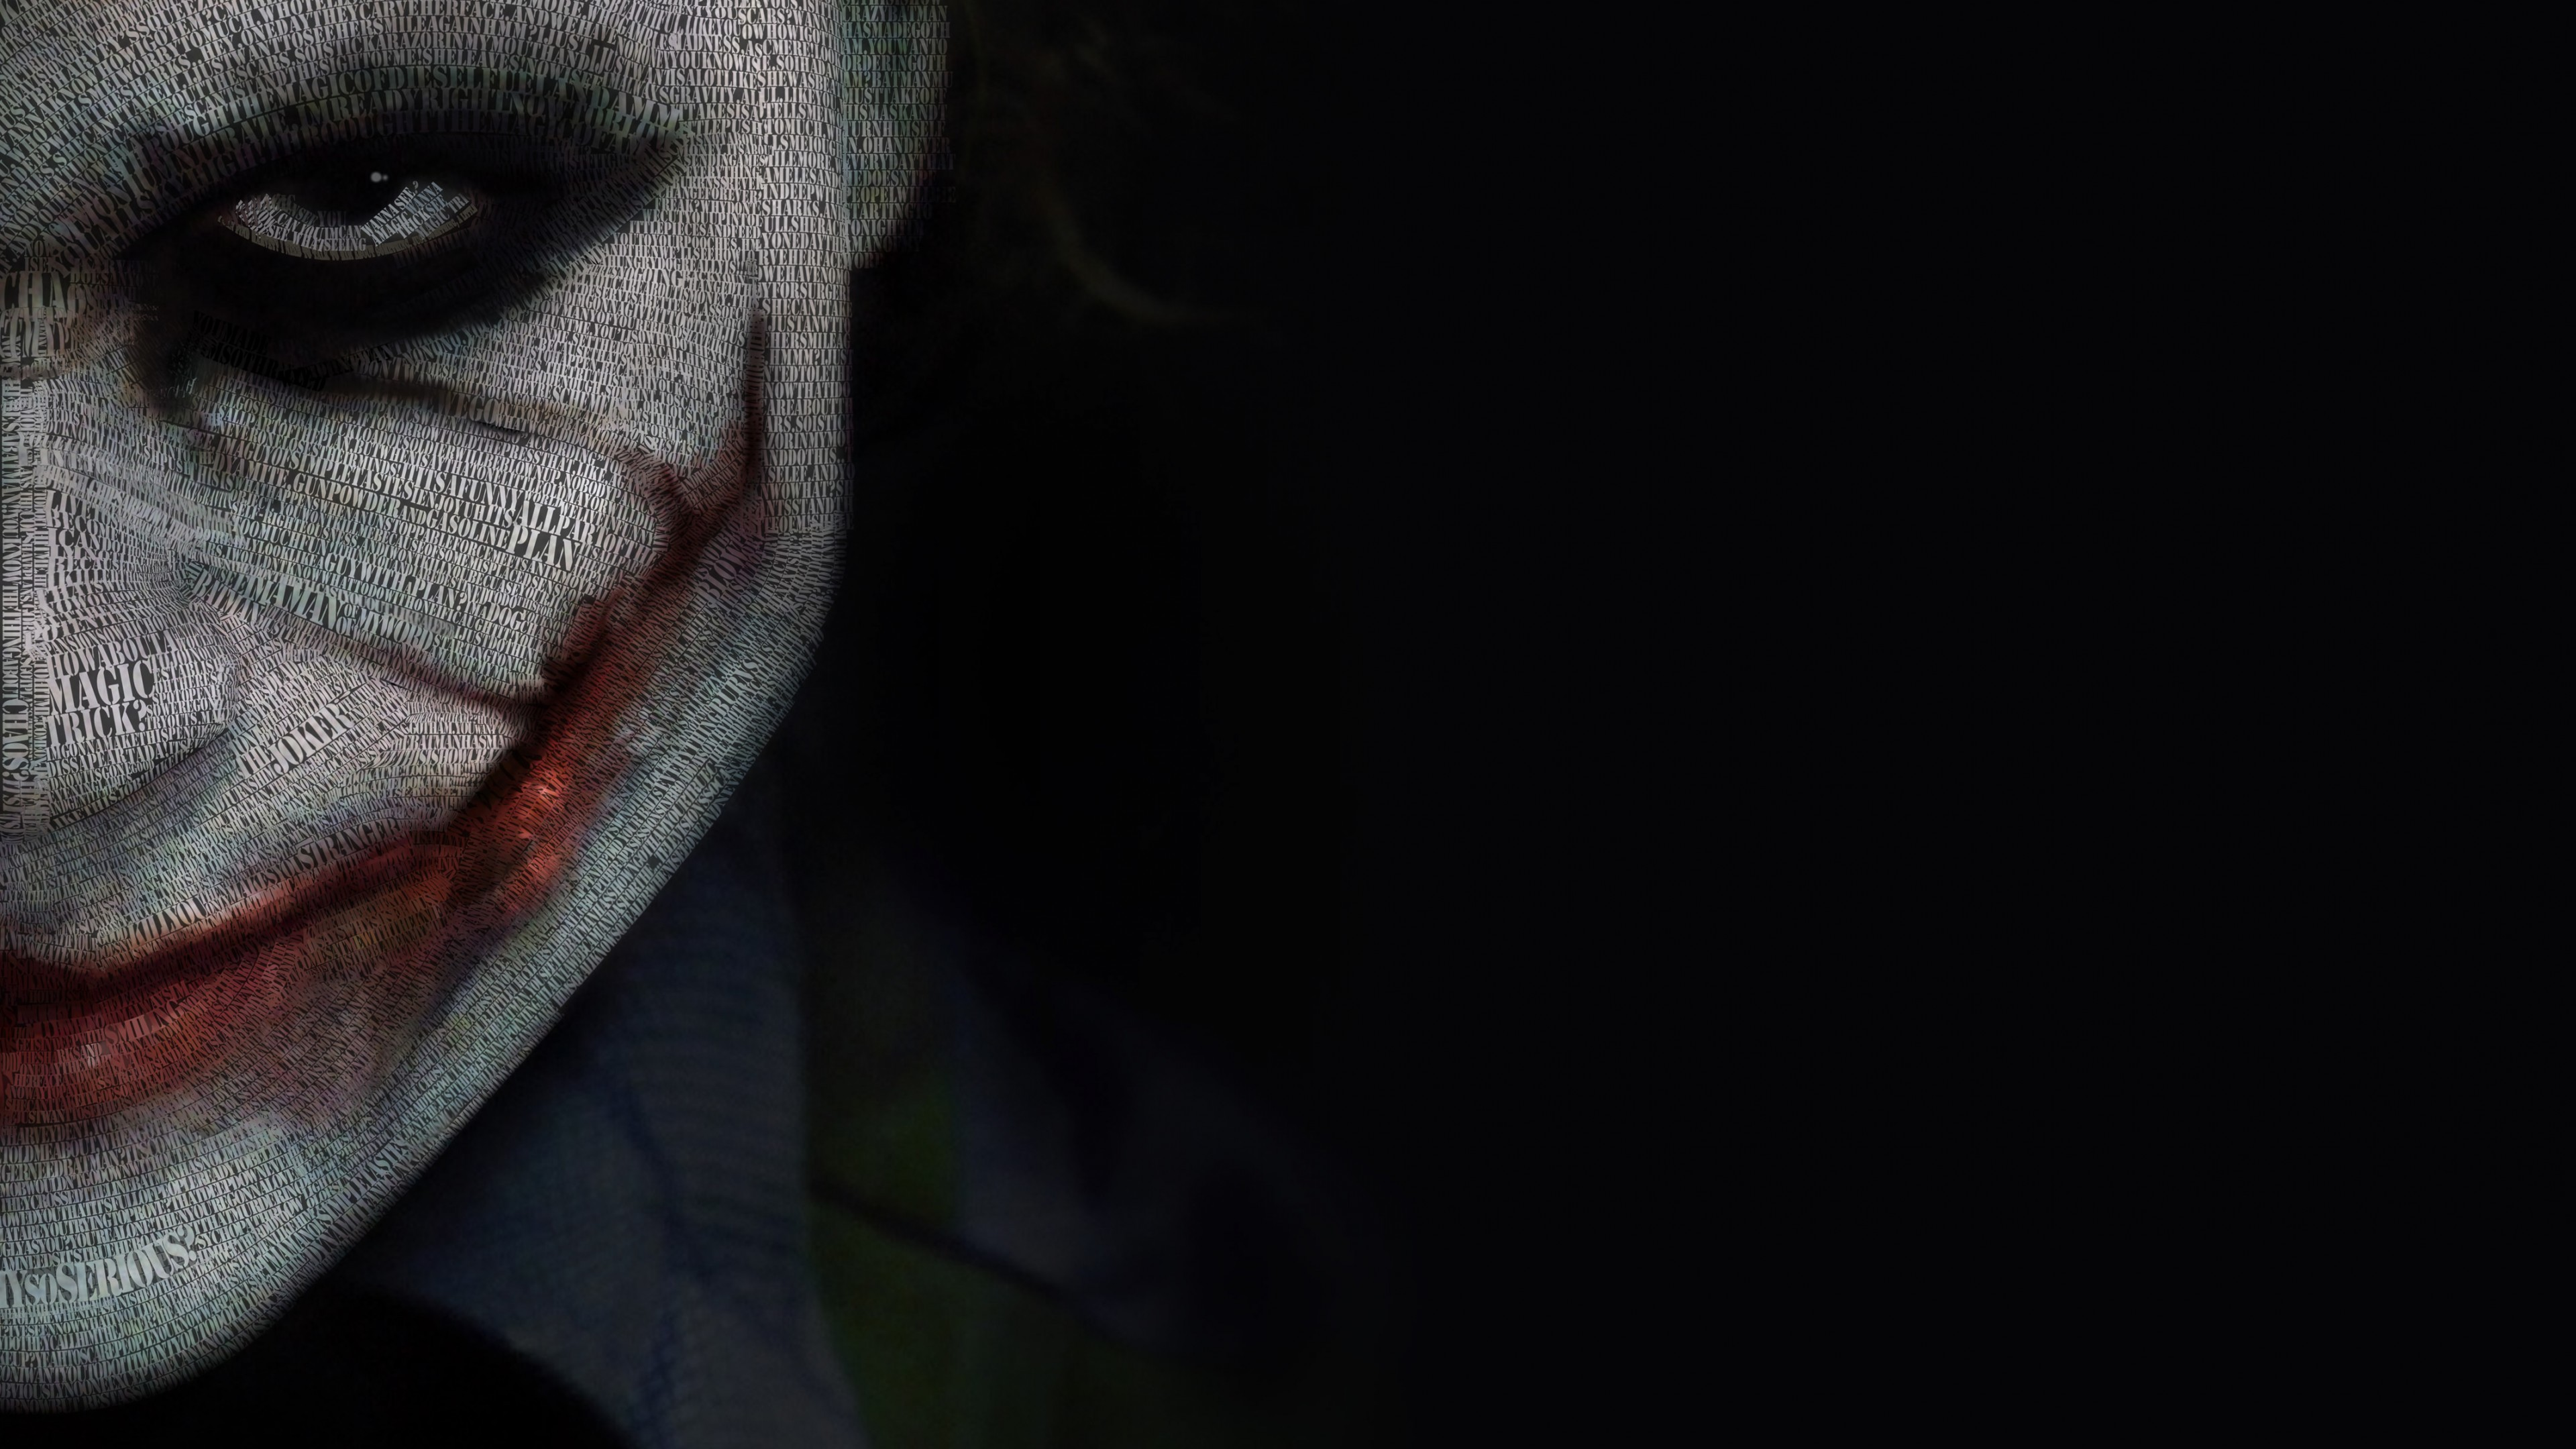 joker wallpapers, photos and desktop backgrounds up to 8k [7680x4320